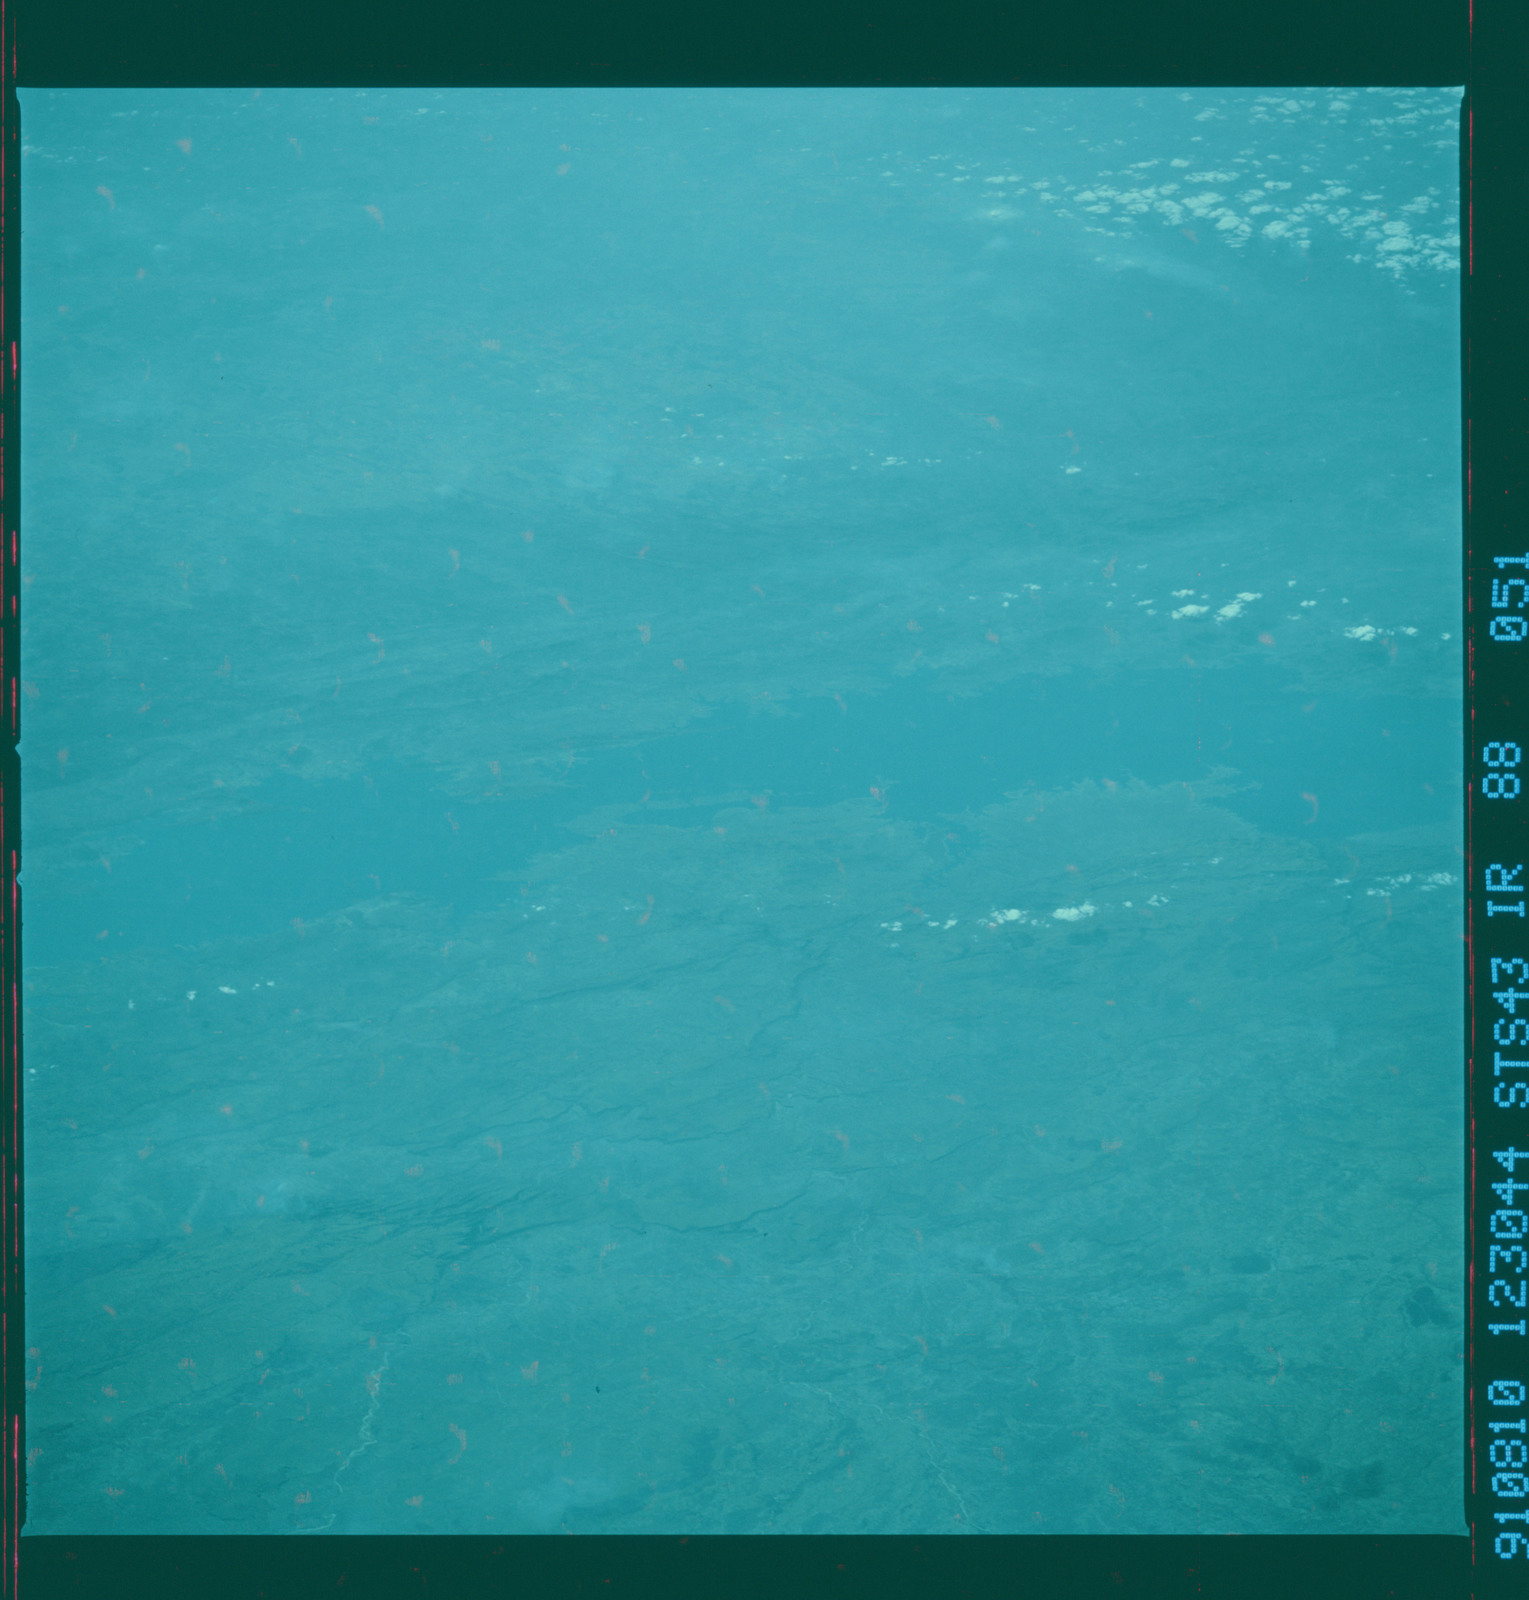 S43-88-051 - STS-043 - STS-43 earth observations